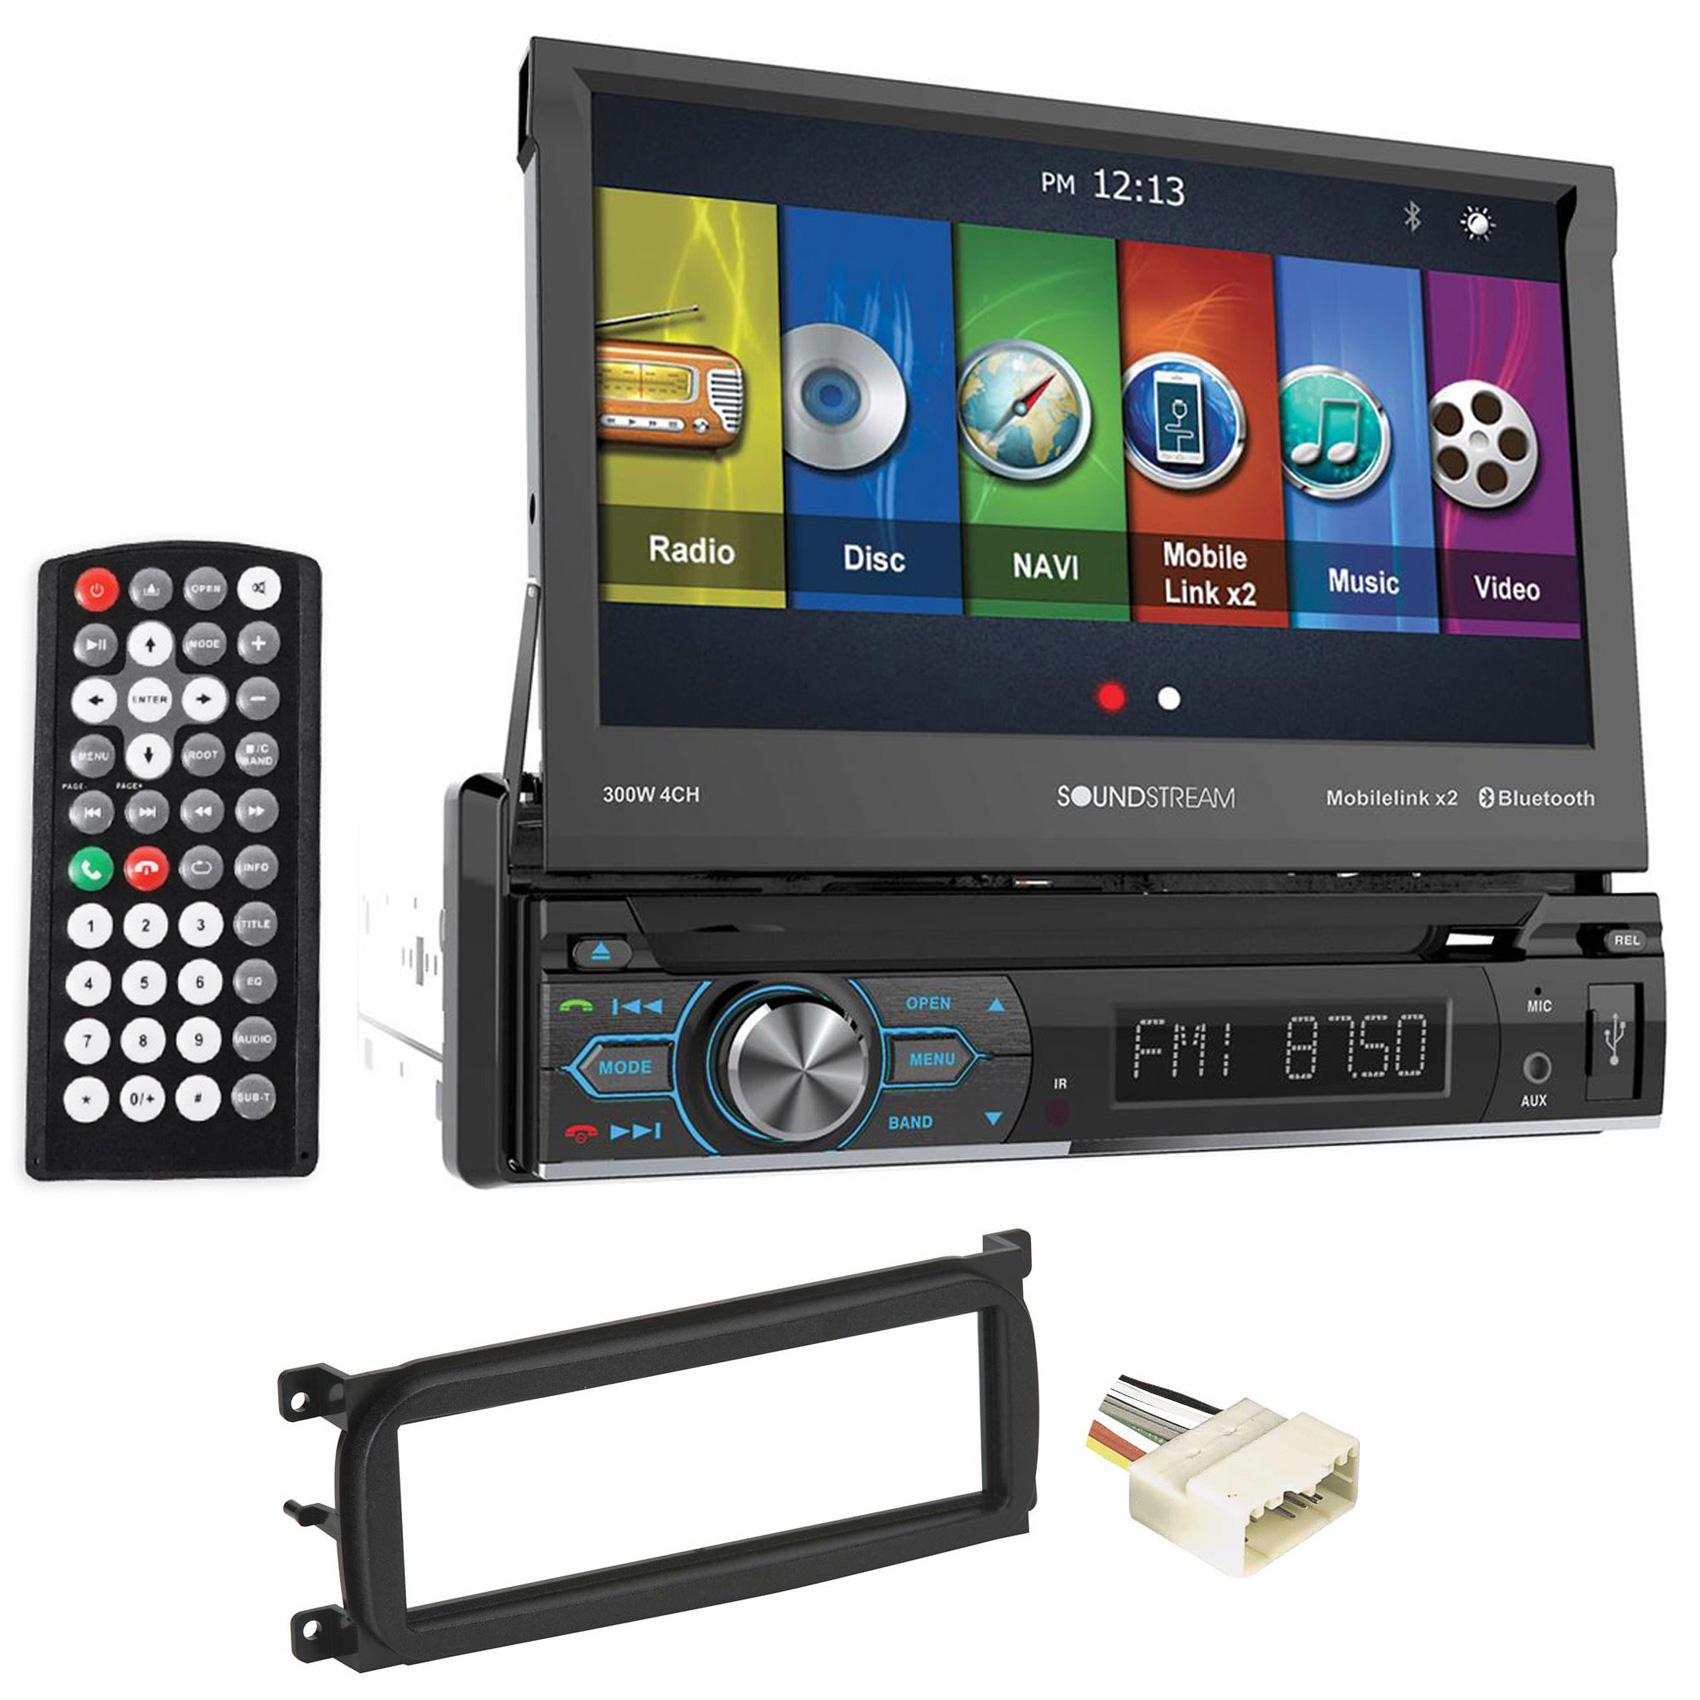 1999-2004 Jeep Grand Cherokee Navigation DVD Player w Bluetooth, MobileLink8.2 by Soundstream